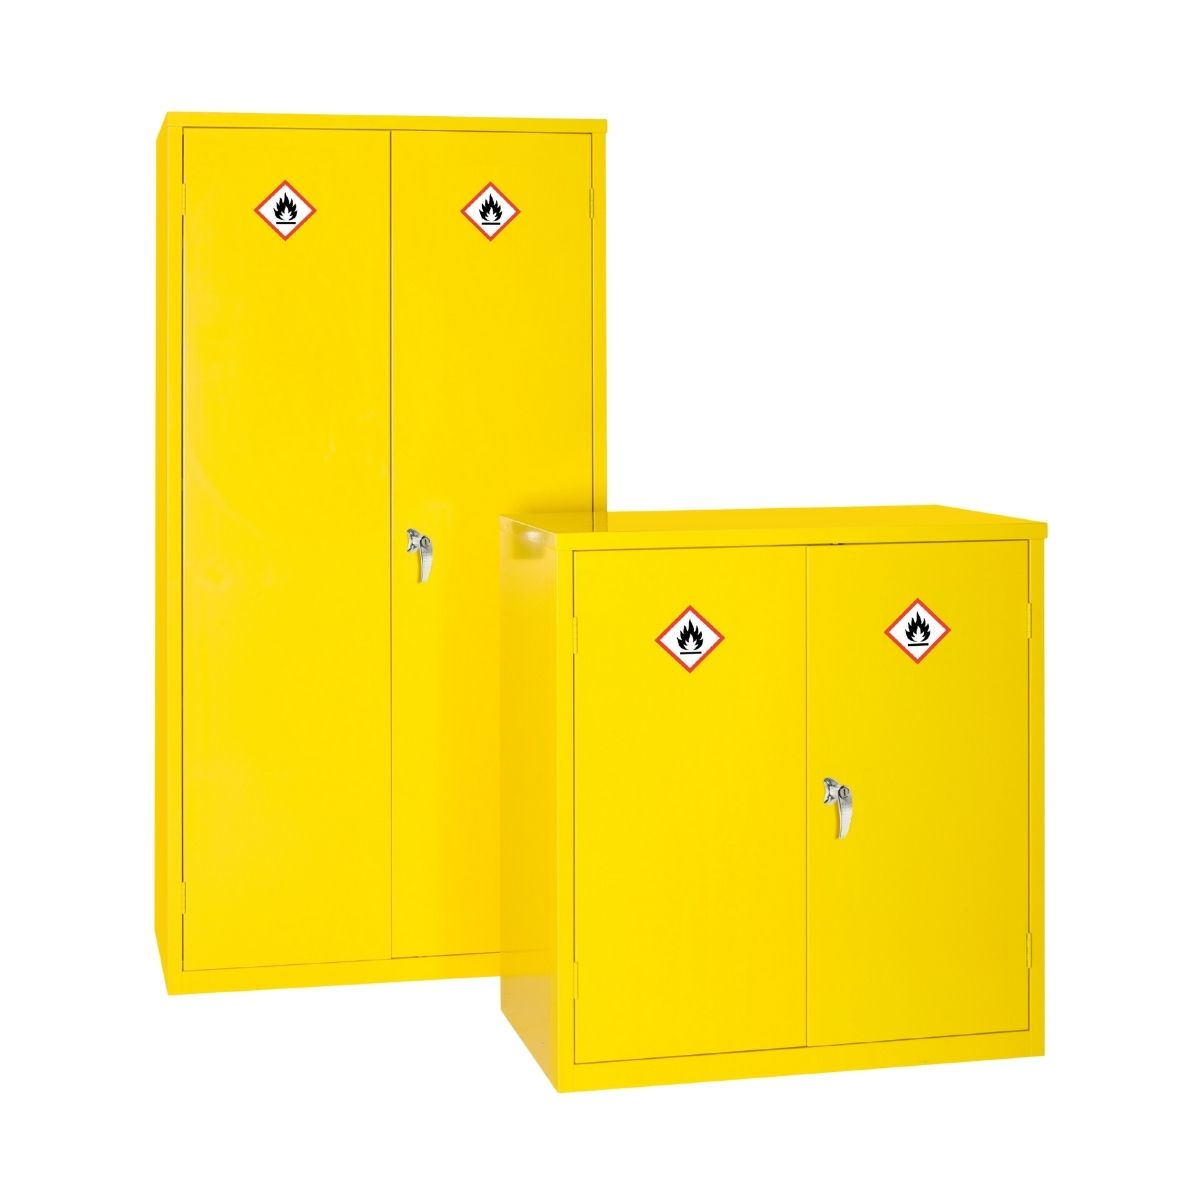 JP0045 Dangerous Substance Cabinets 1200 x 915 x 457